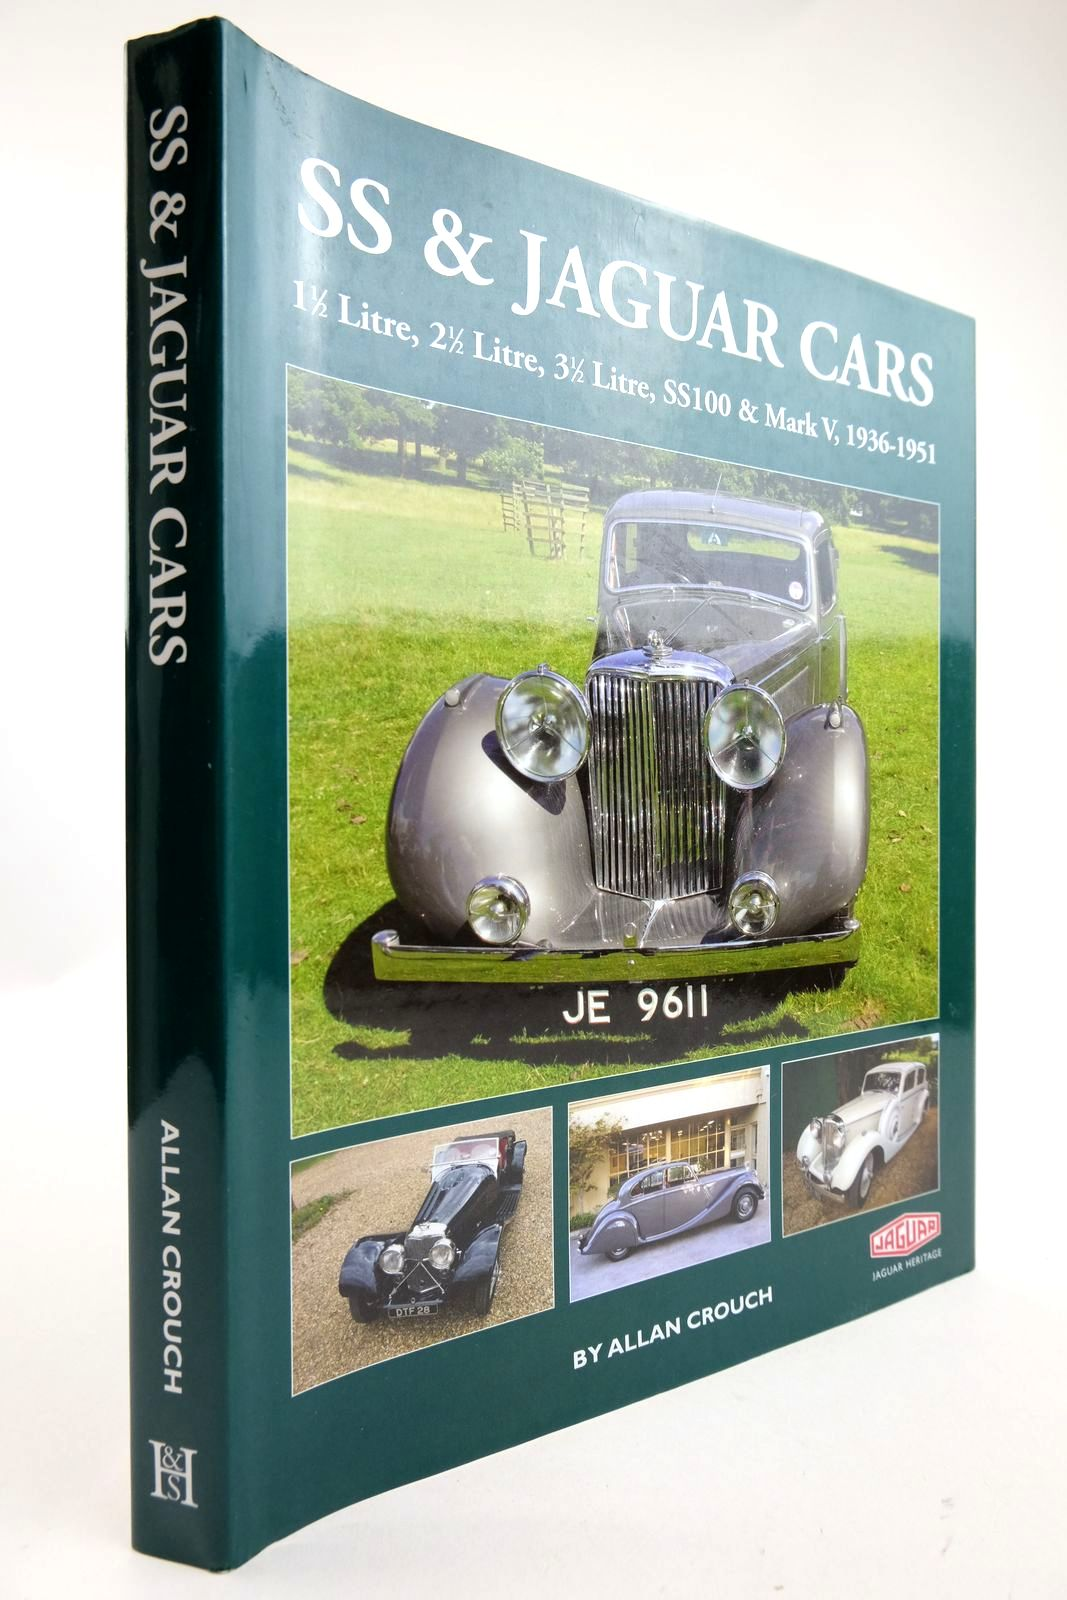 Photo of SS & JAGUAR CARS 1936-1951 written by Crouch, Allan published by Herridge & Sons (STOCK CODE: 2132859)  for sale by Stella & Rose's Books